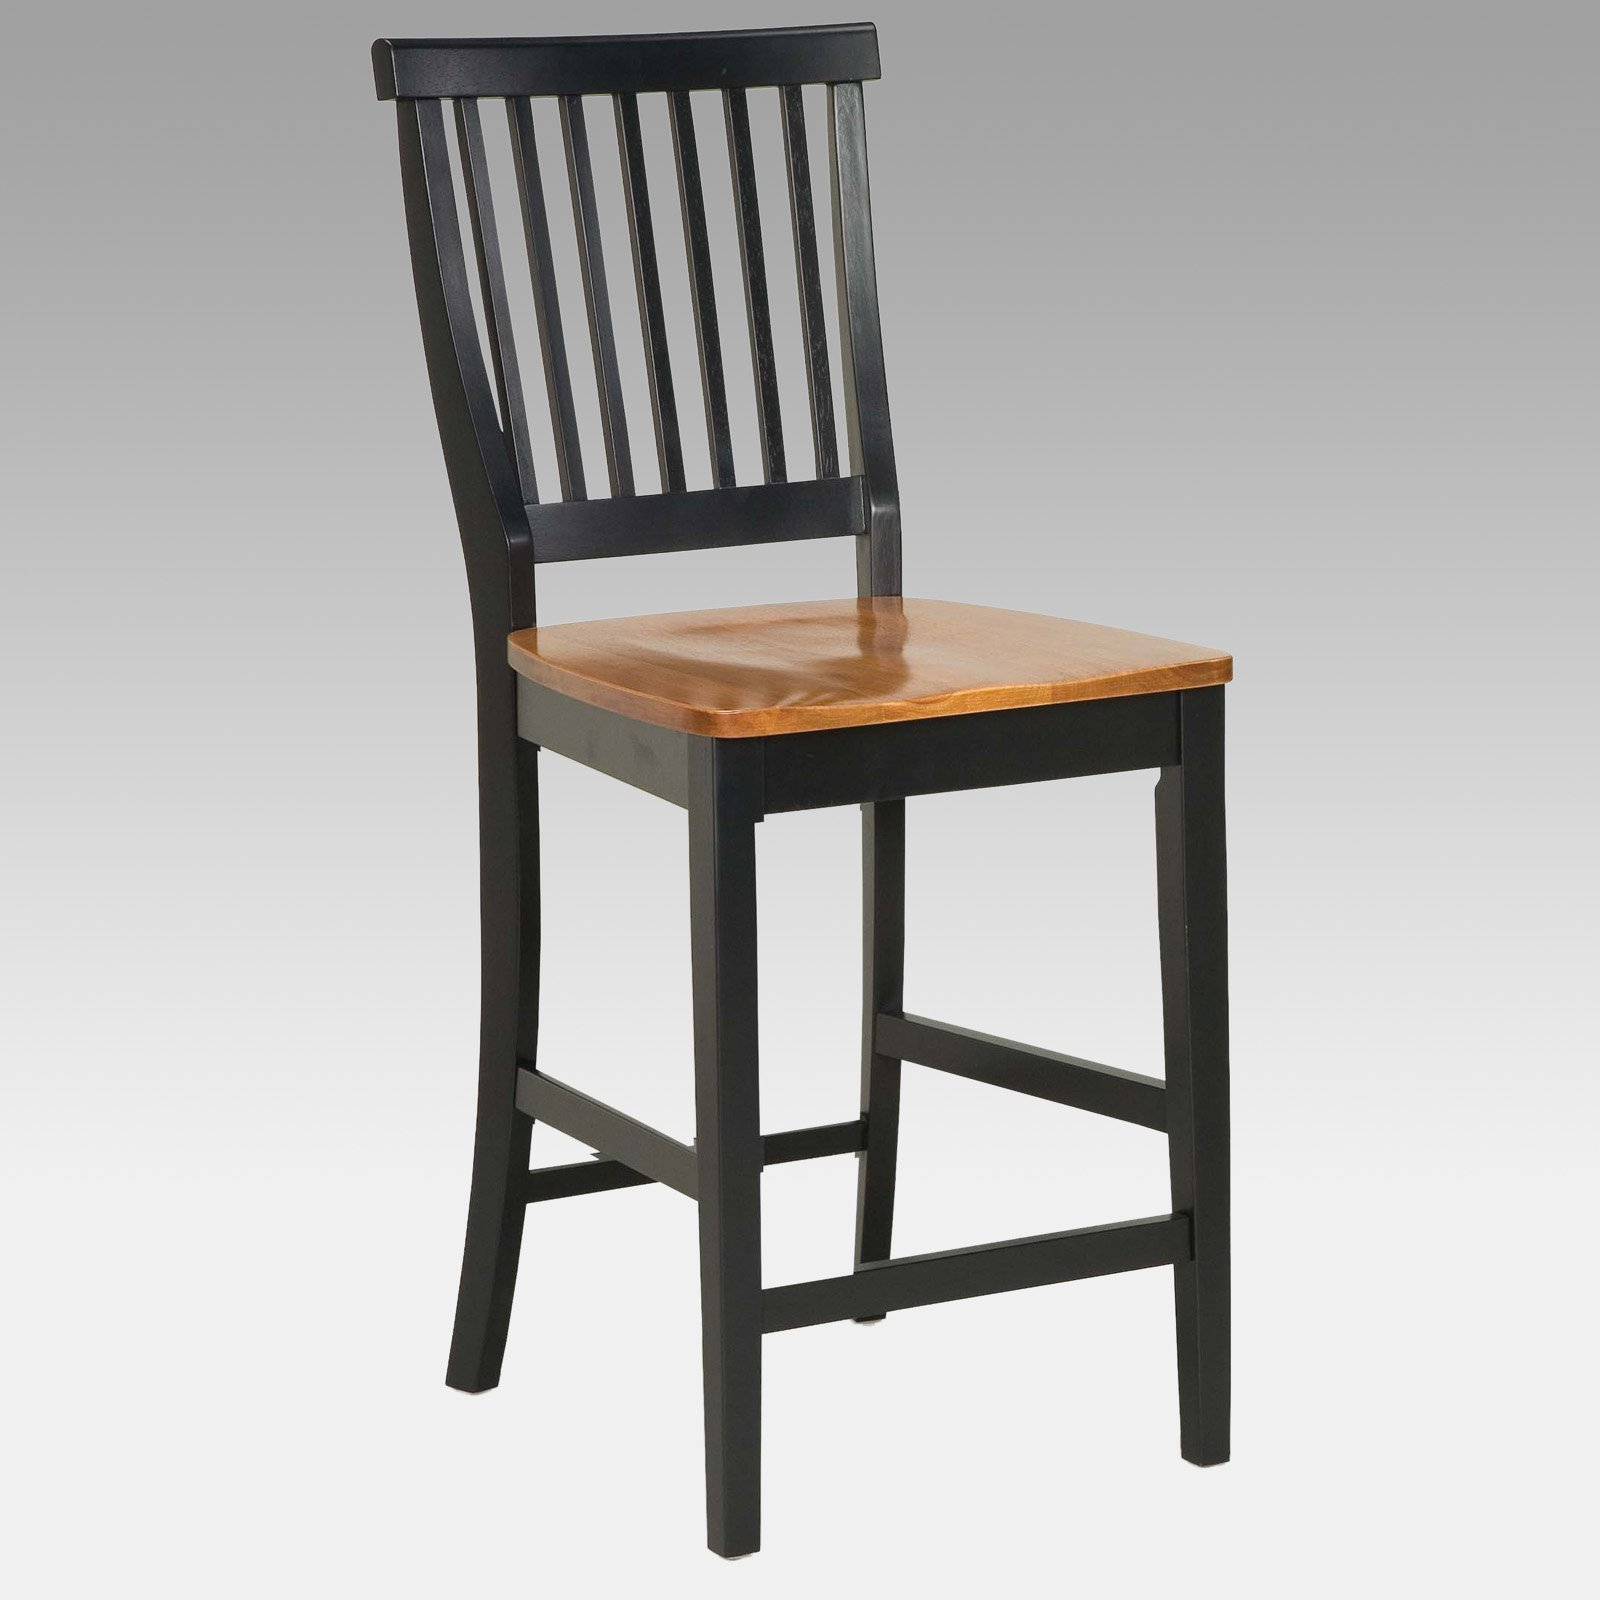 """Kitchen Bar Stools Walmart: Home Styles Wood Counter Stool 24"""", Black And Cottage Oak"""